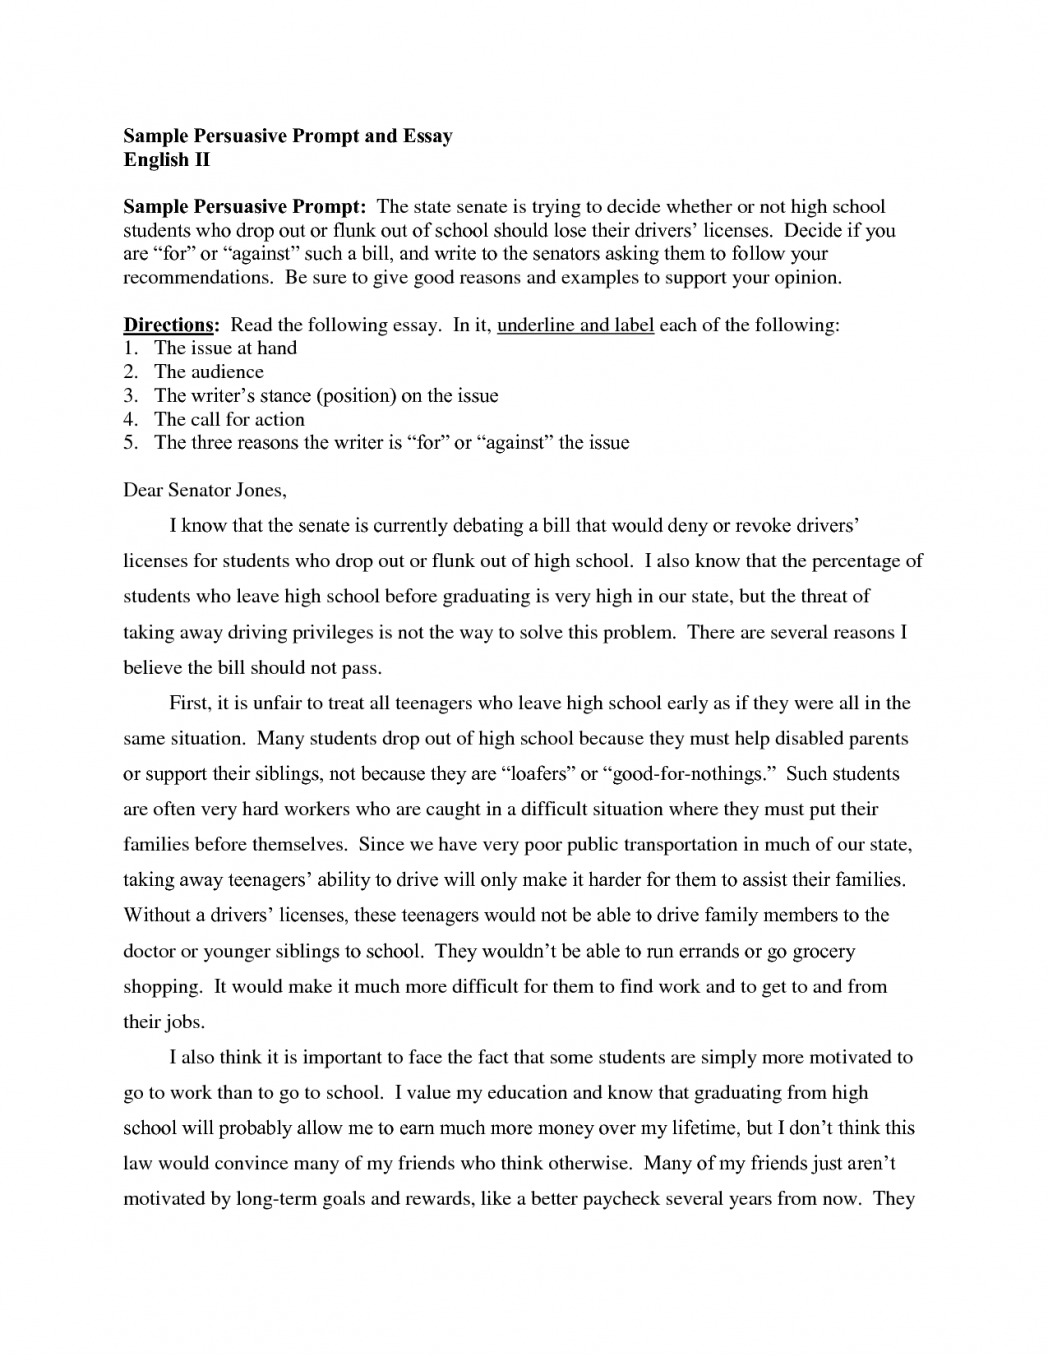 015 Essay Example Prompts Highool Students College Paper Academic Writing Argumentative Topics For Sample Examples Of Persuasive Essays Pictur Funny Creative 1048x1356 Unique High School In Urdu Halloween Questions Full